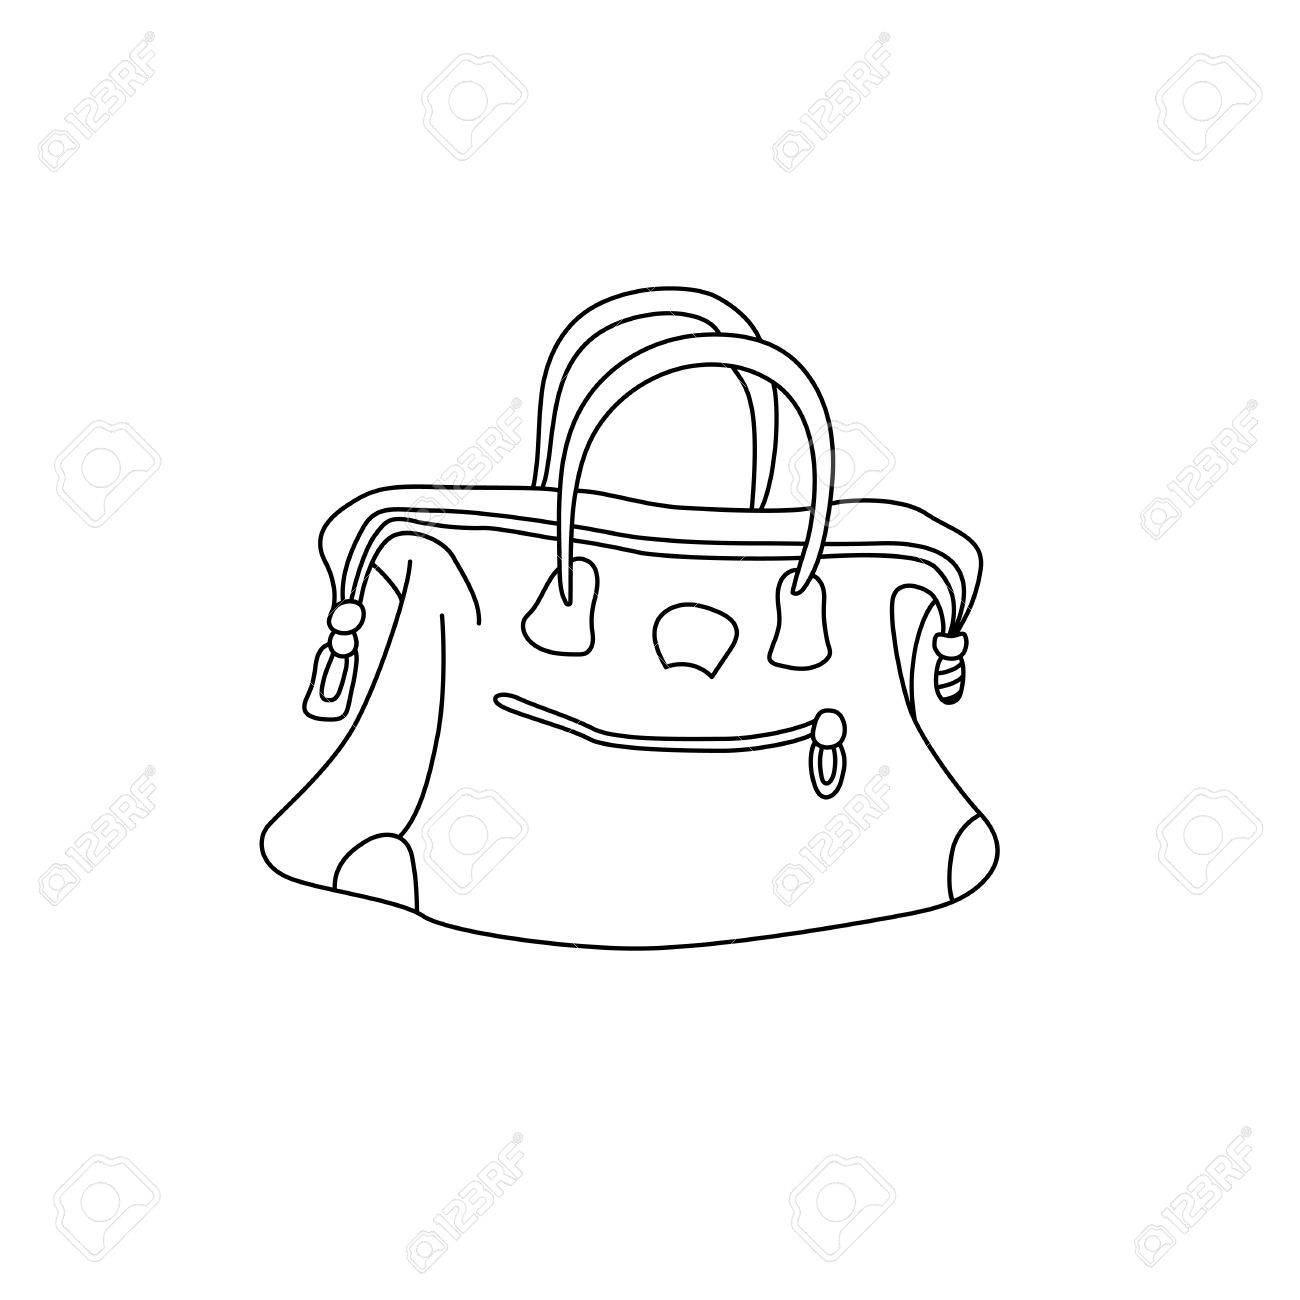 1300x1300 Vector Illustration Of Travel Bag. Hand Drawing Sketch Suitcase